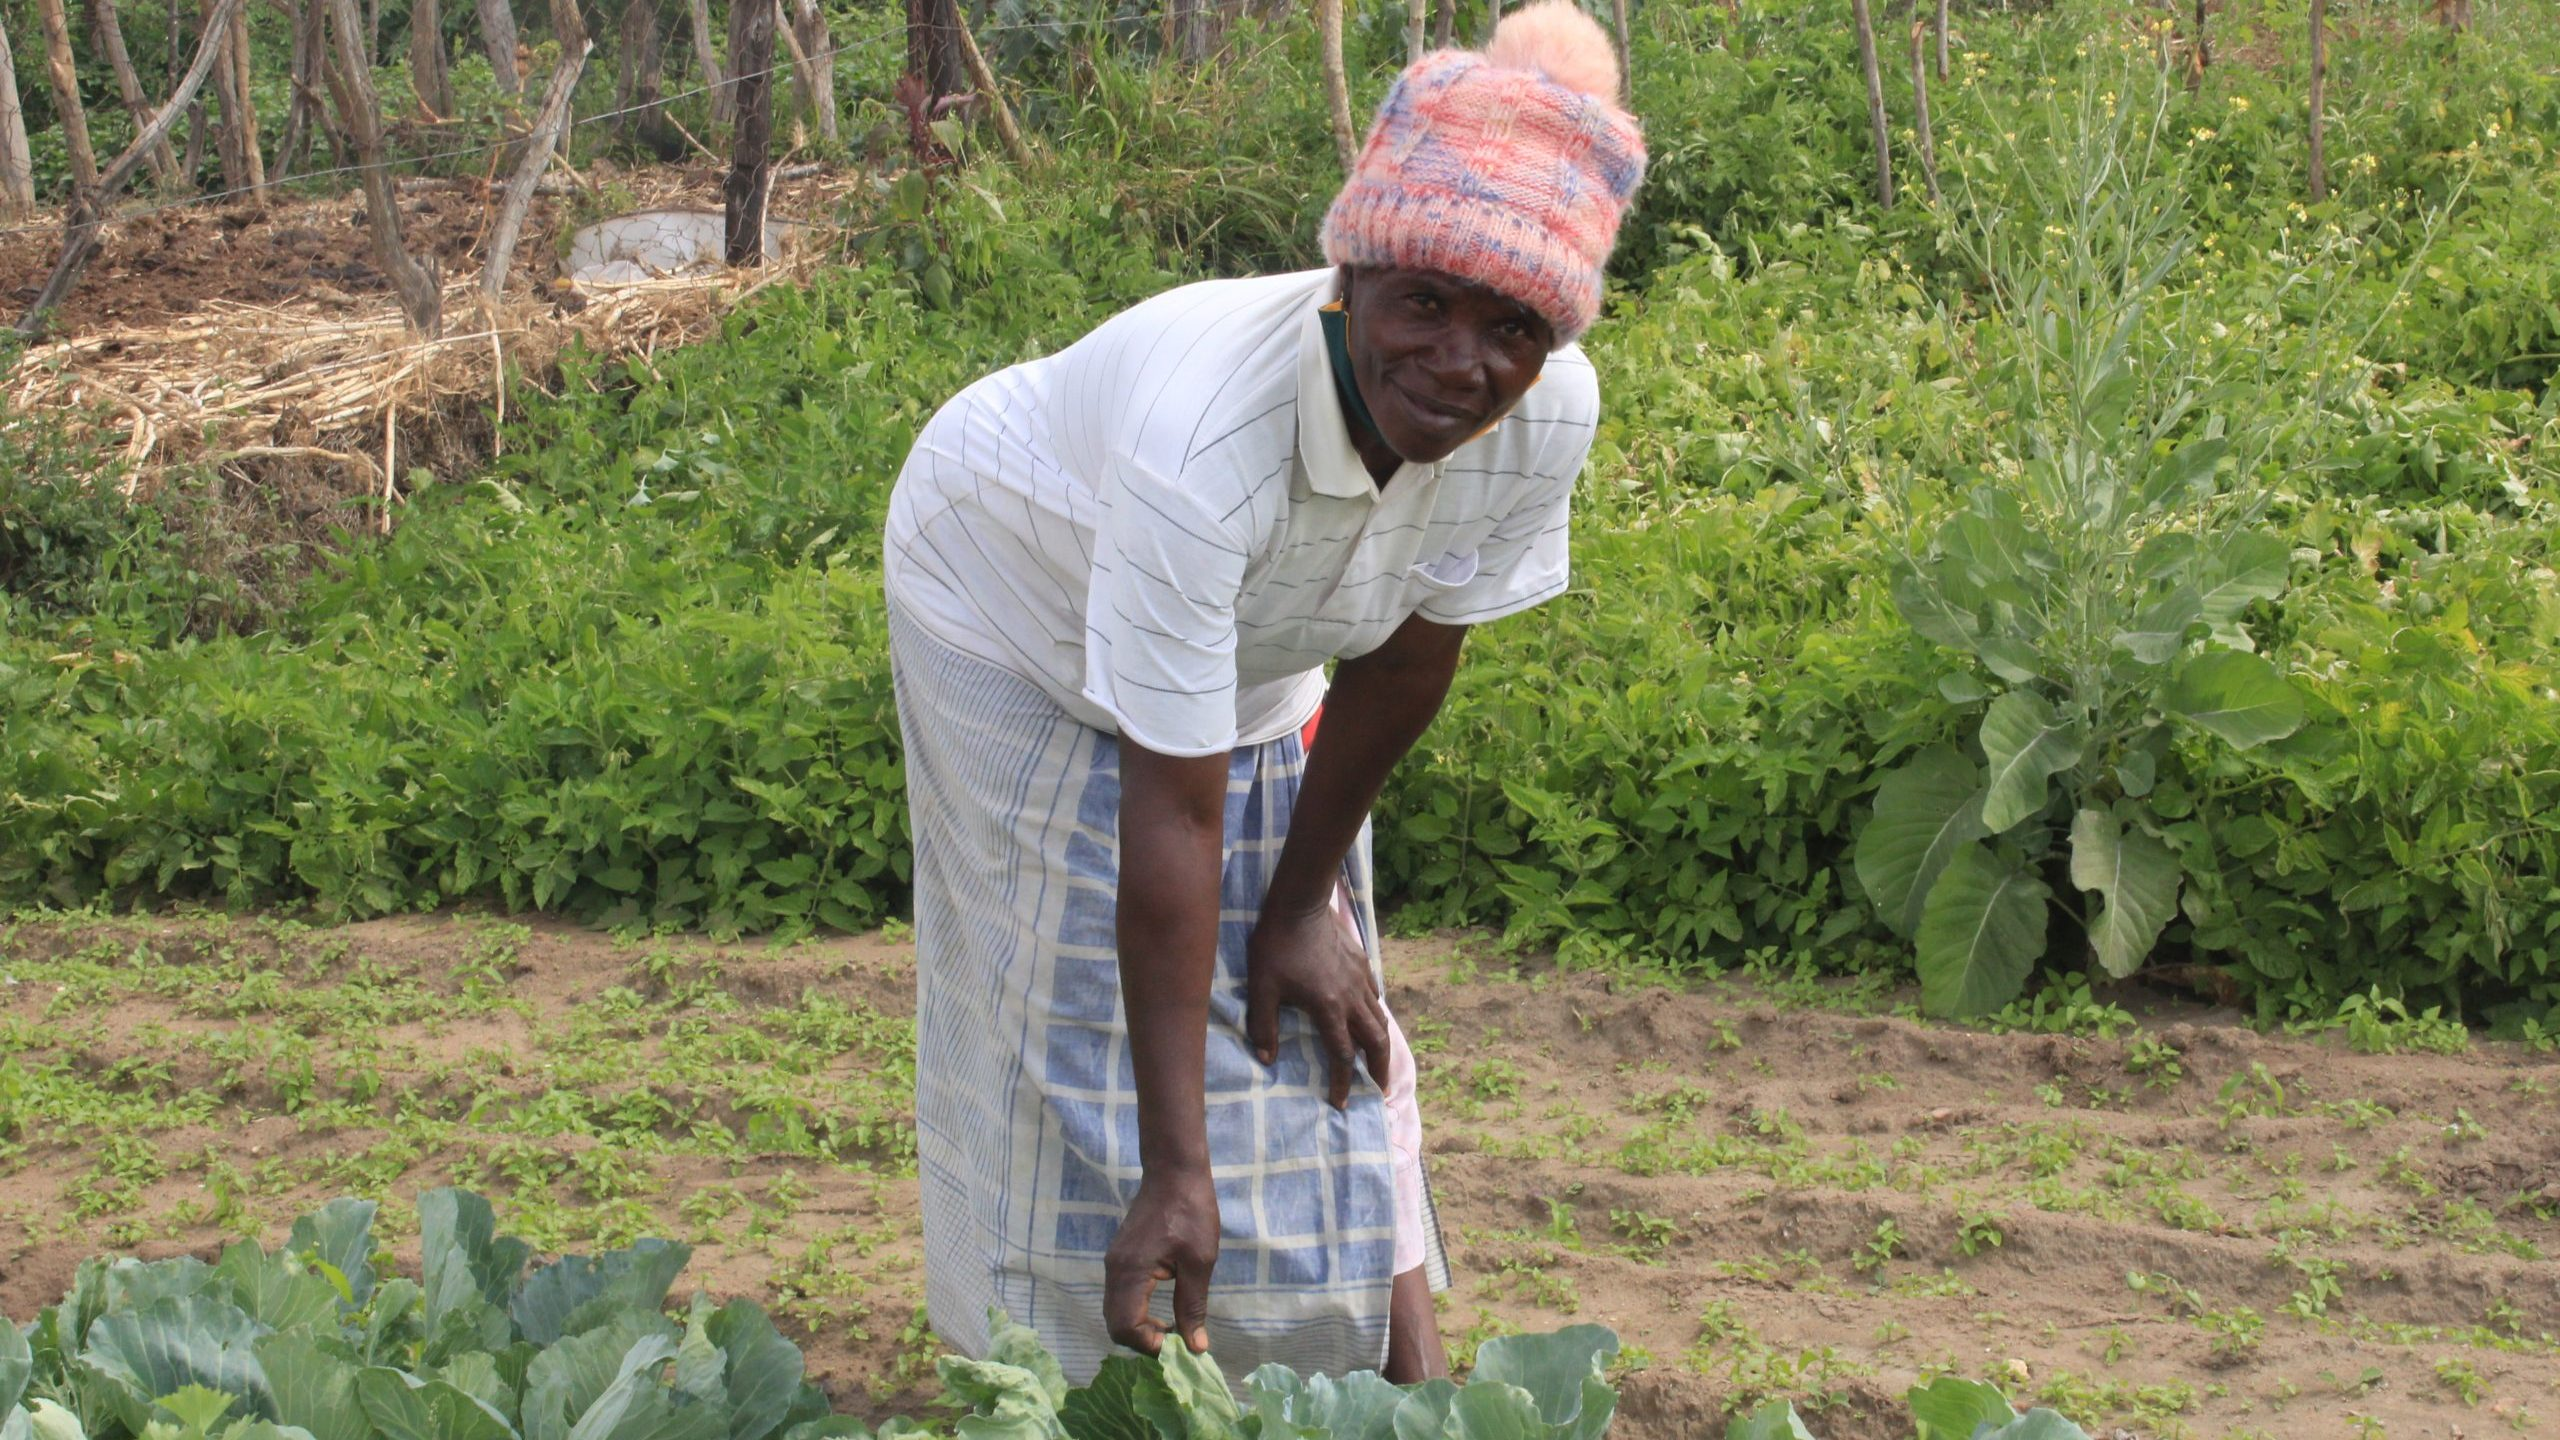 Food gardens fight rural poverty